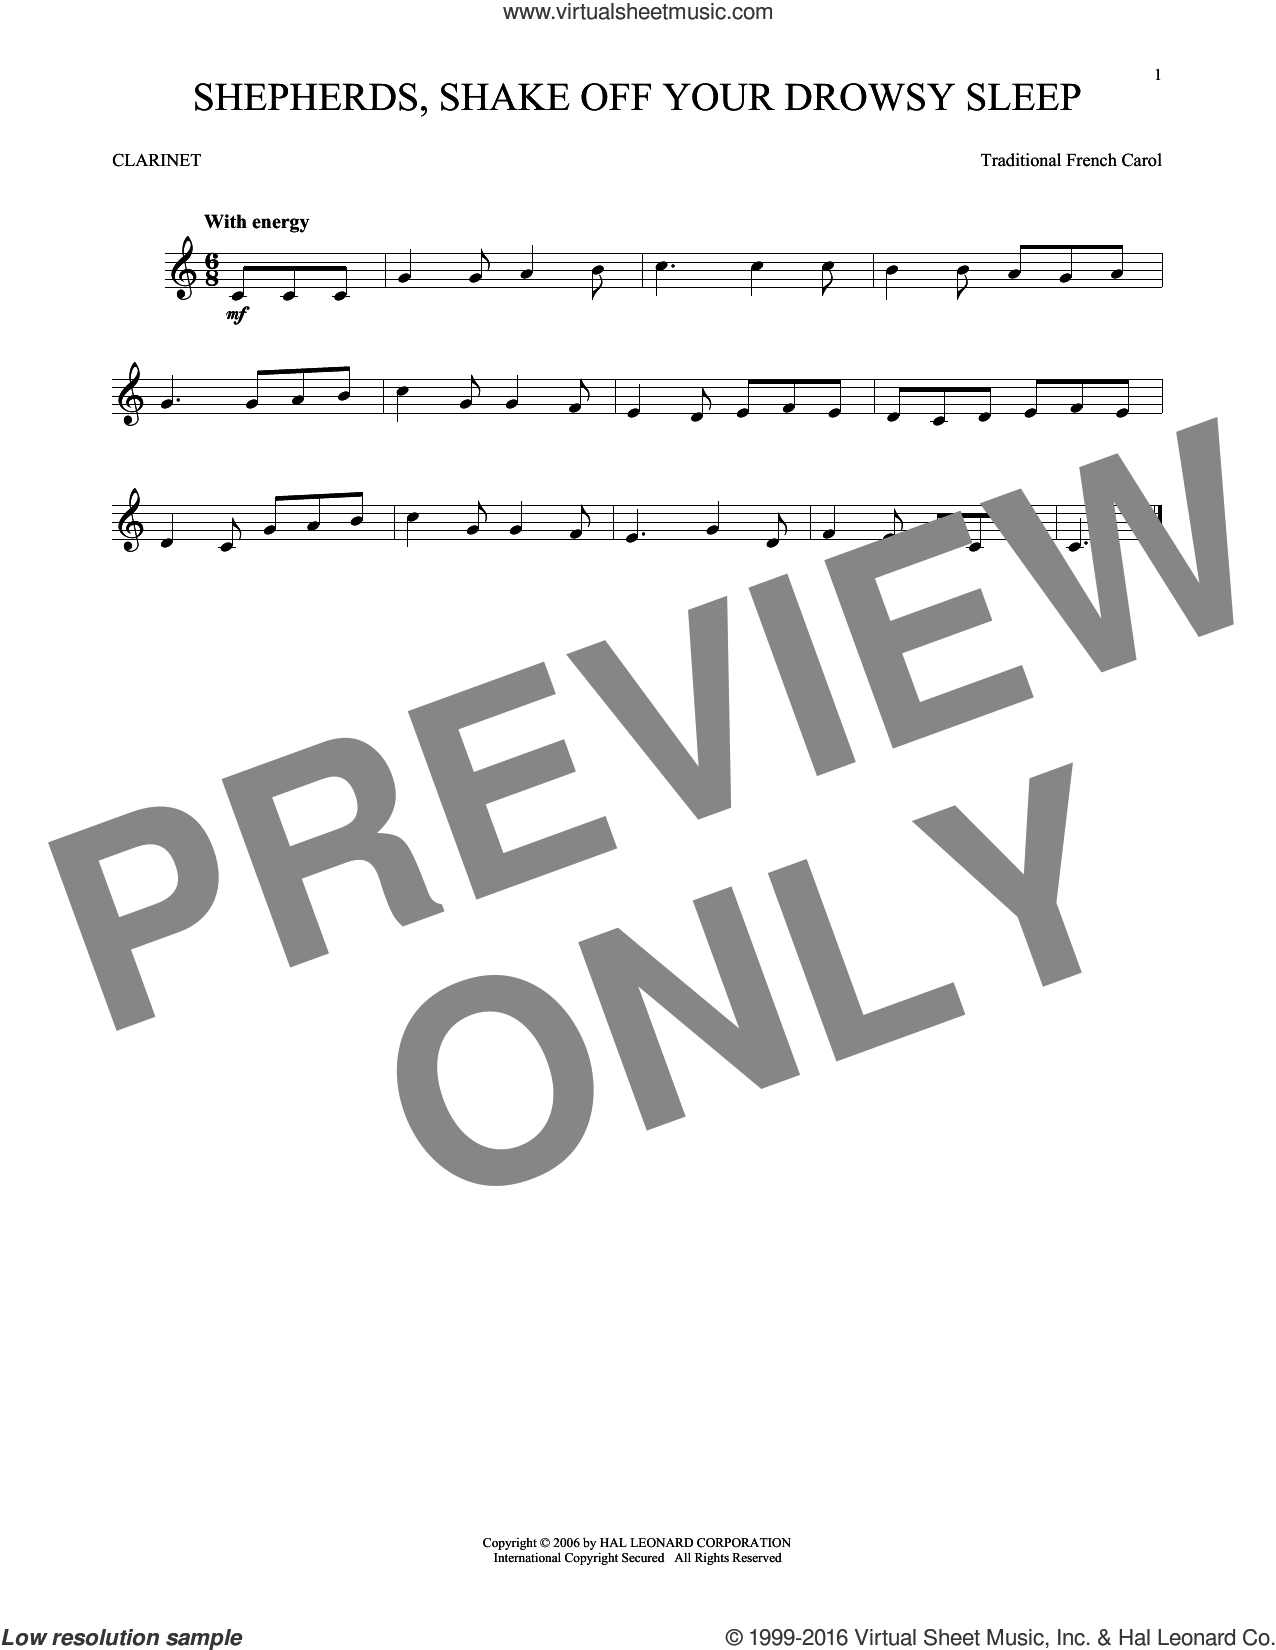 Shepherds, Shake Off Your Drowsy Sleep sheet music for clarinet solo. Score Image Preview.